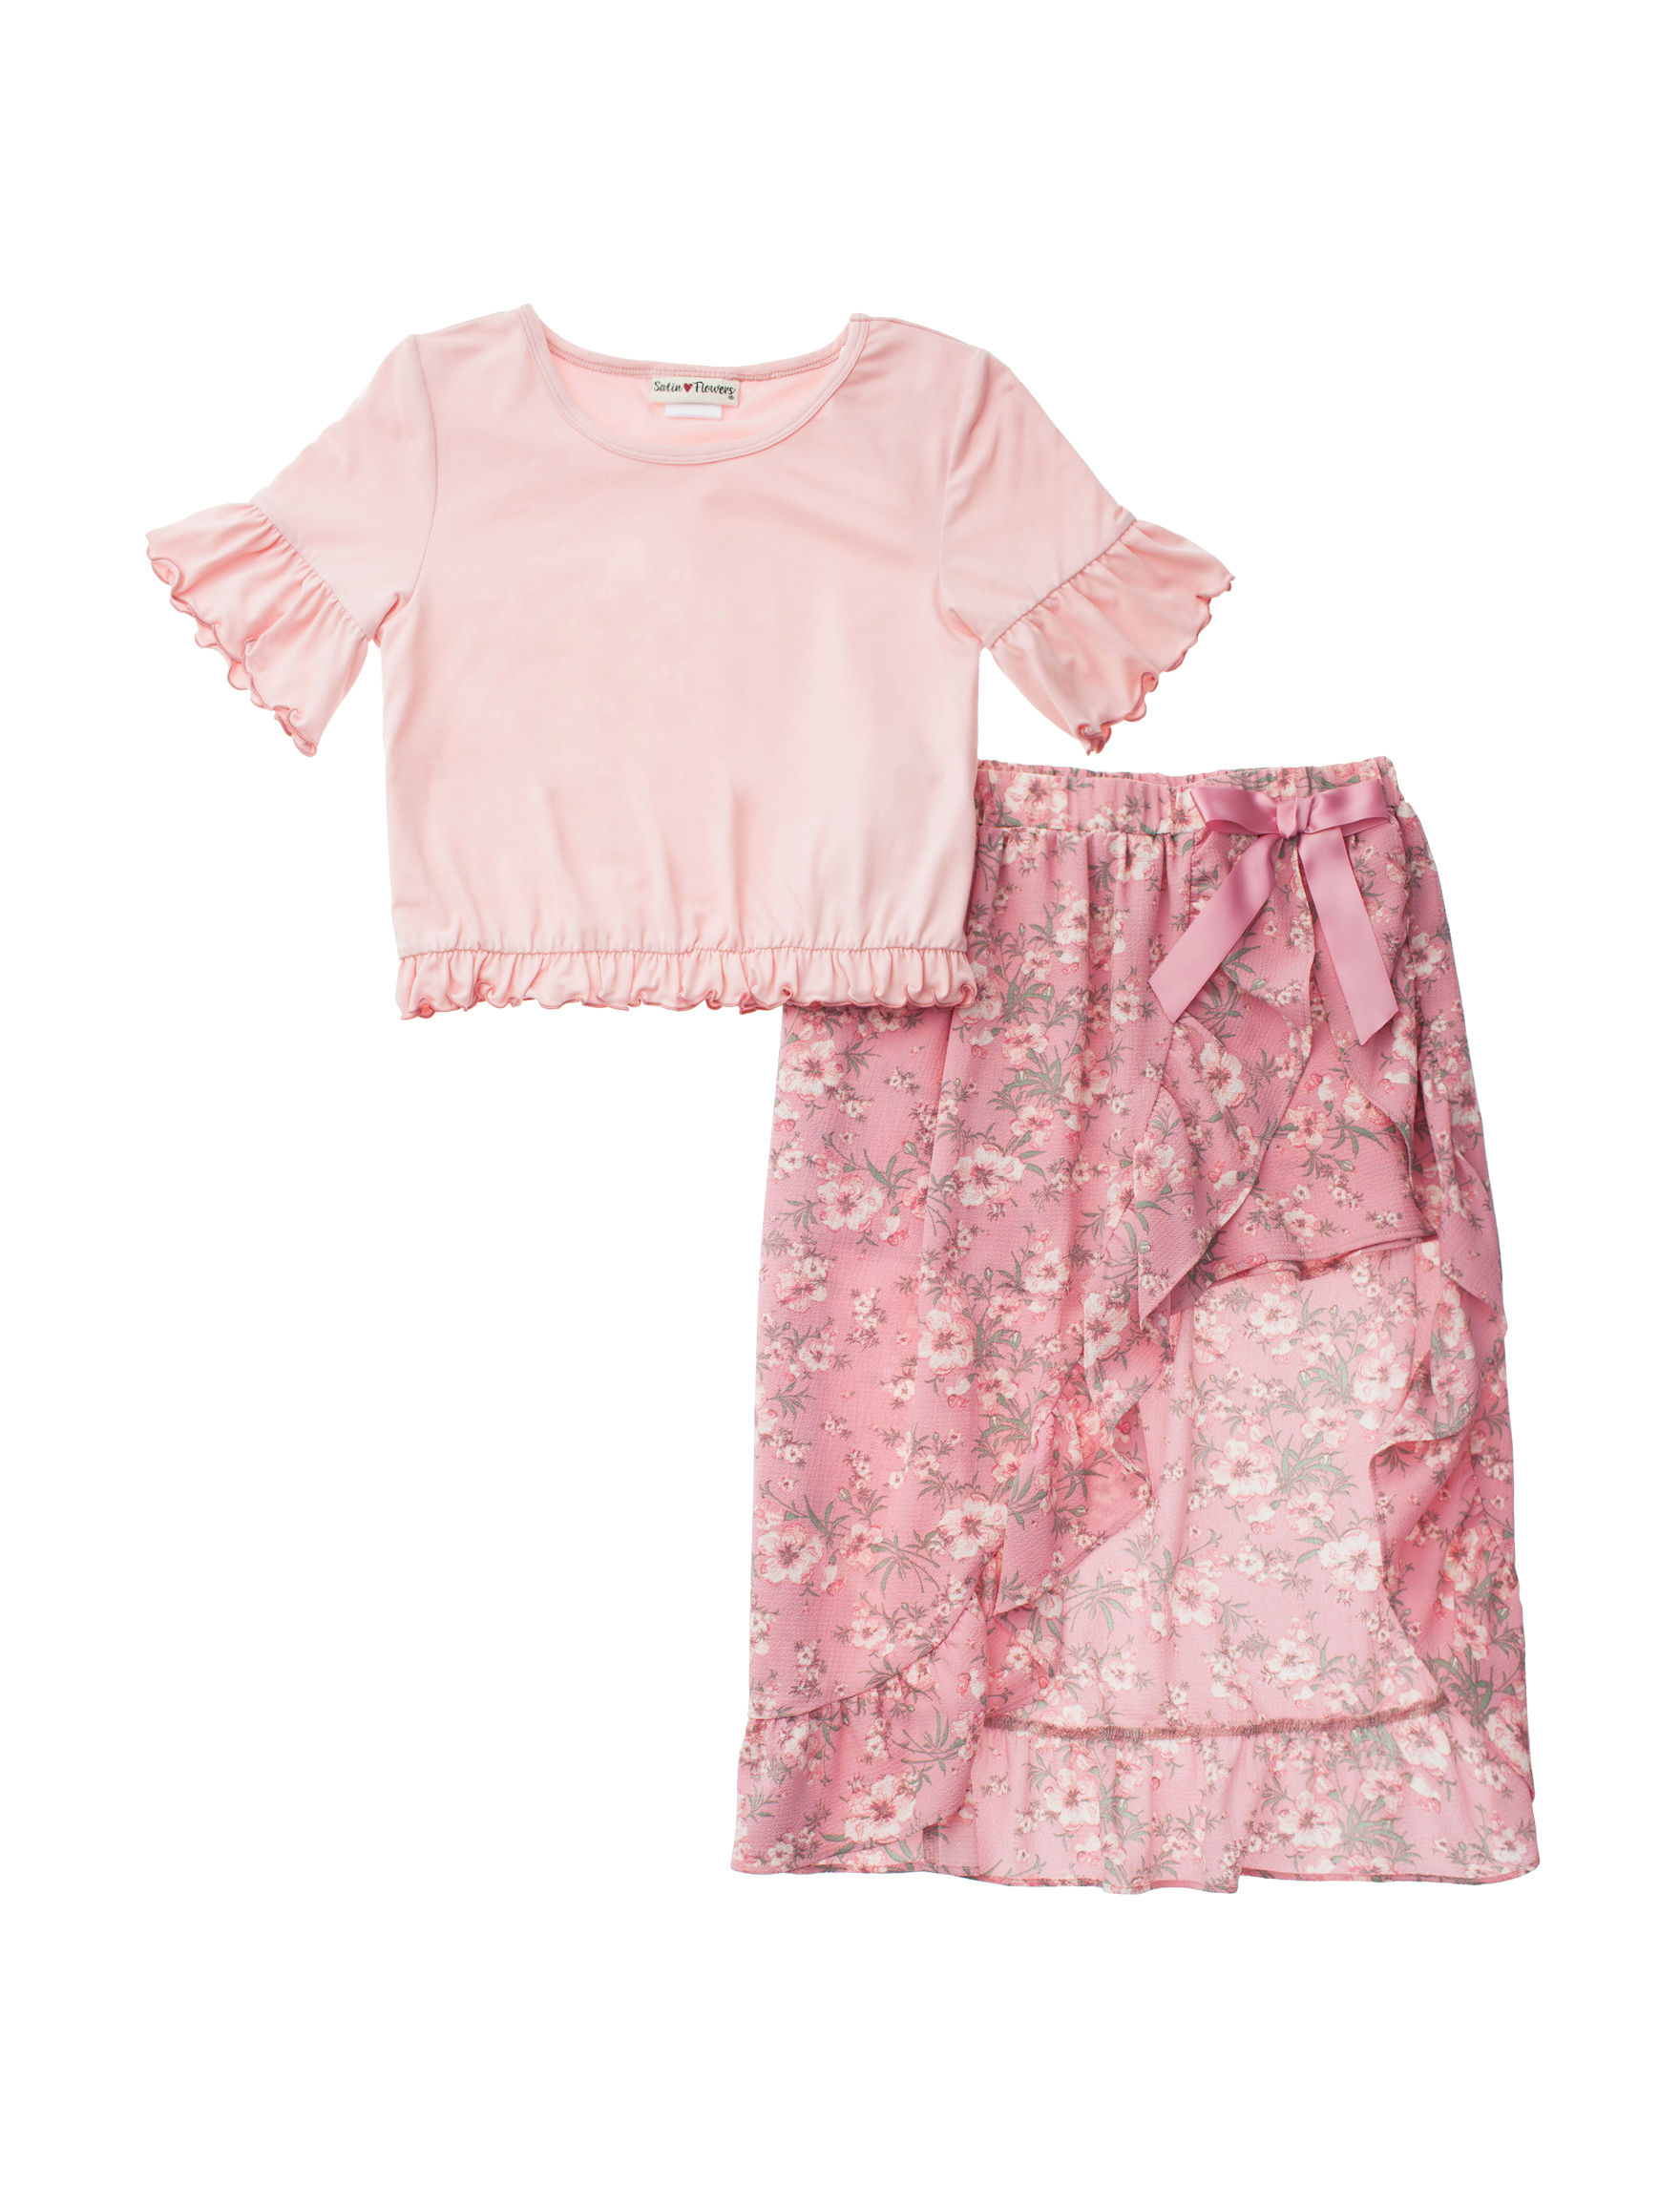 Satin Flowers Pink Floral